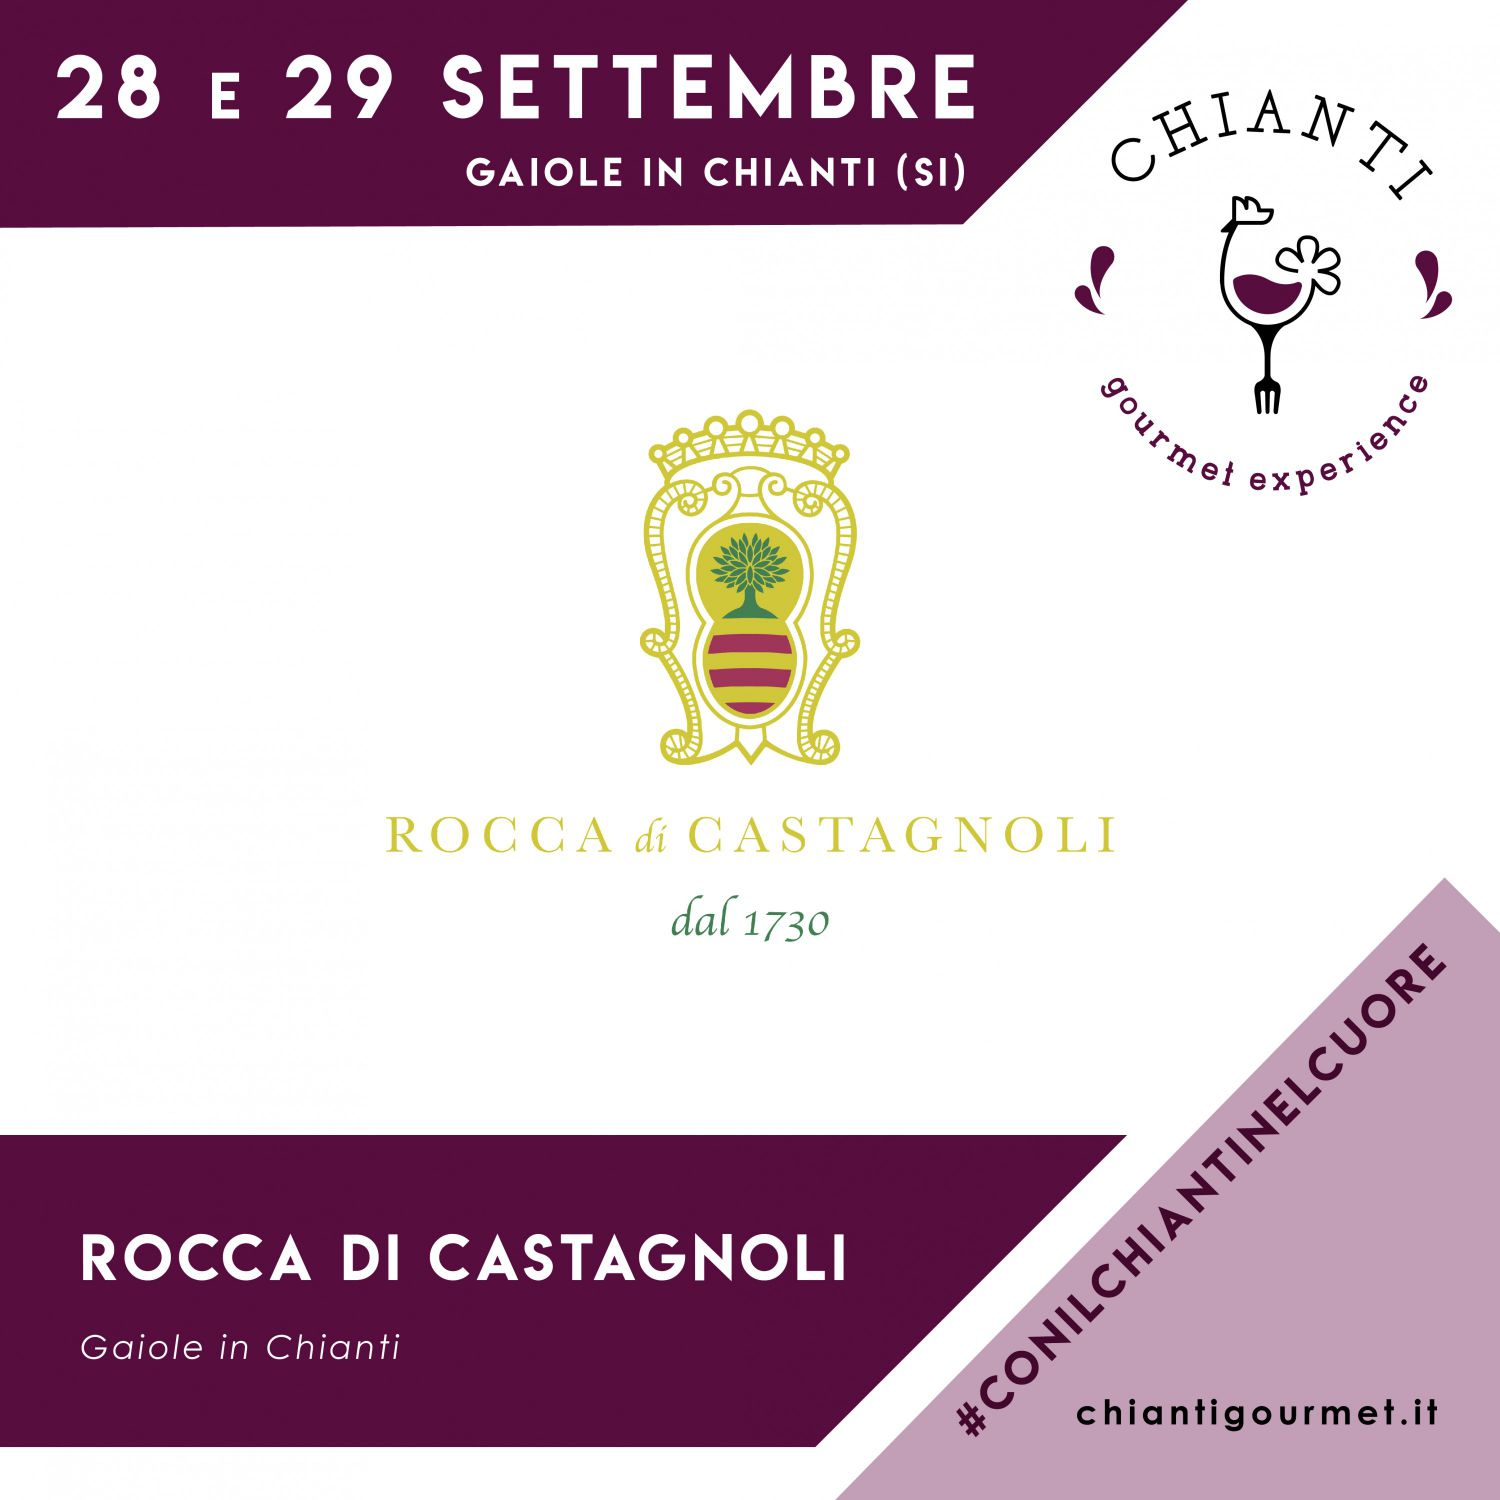 Rocca di Castagnoli will be present at the Chianti